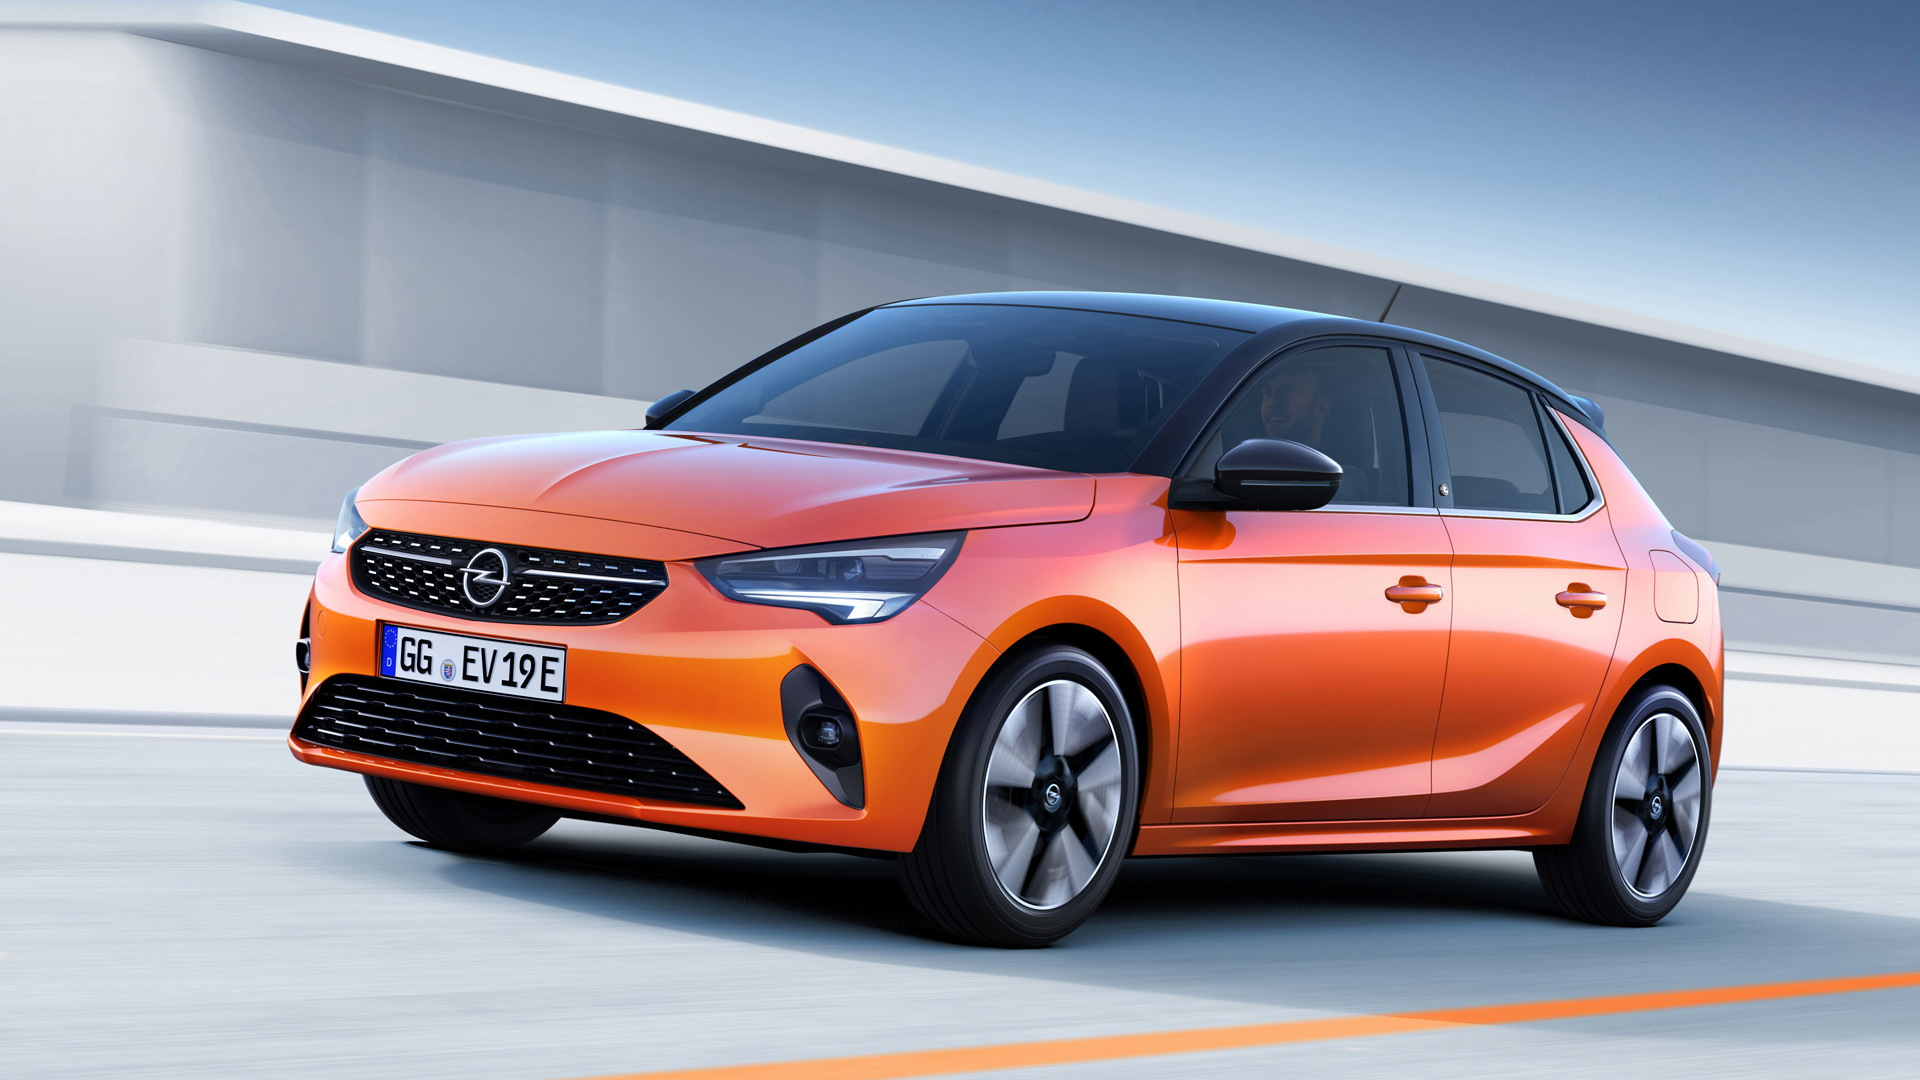 Vauxhall Corsa-e: First look at the all-new all-electric supermini